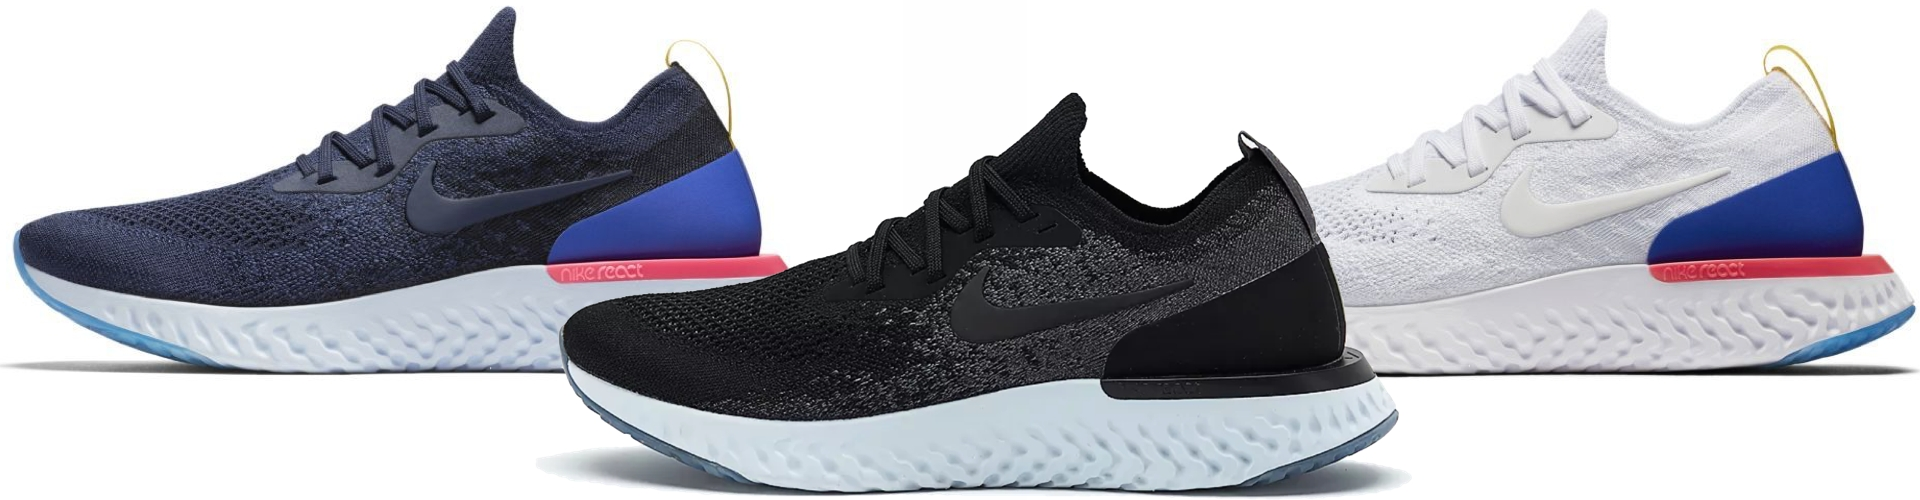 uk availability c2cd9 5a32c Nike Epic React Flyknit